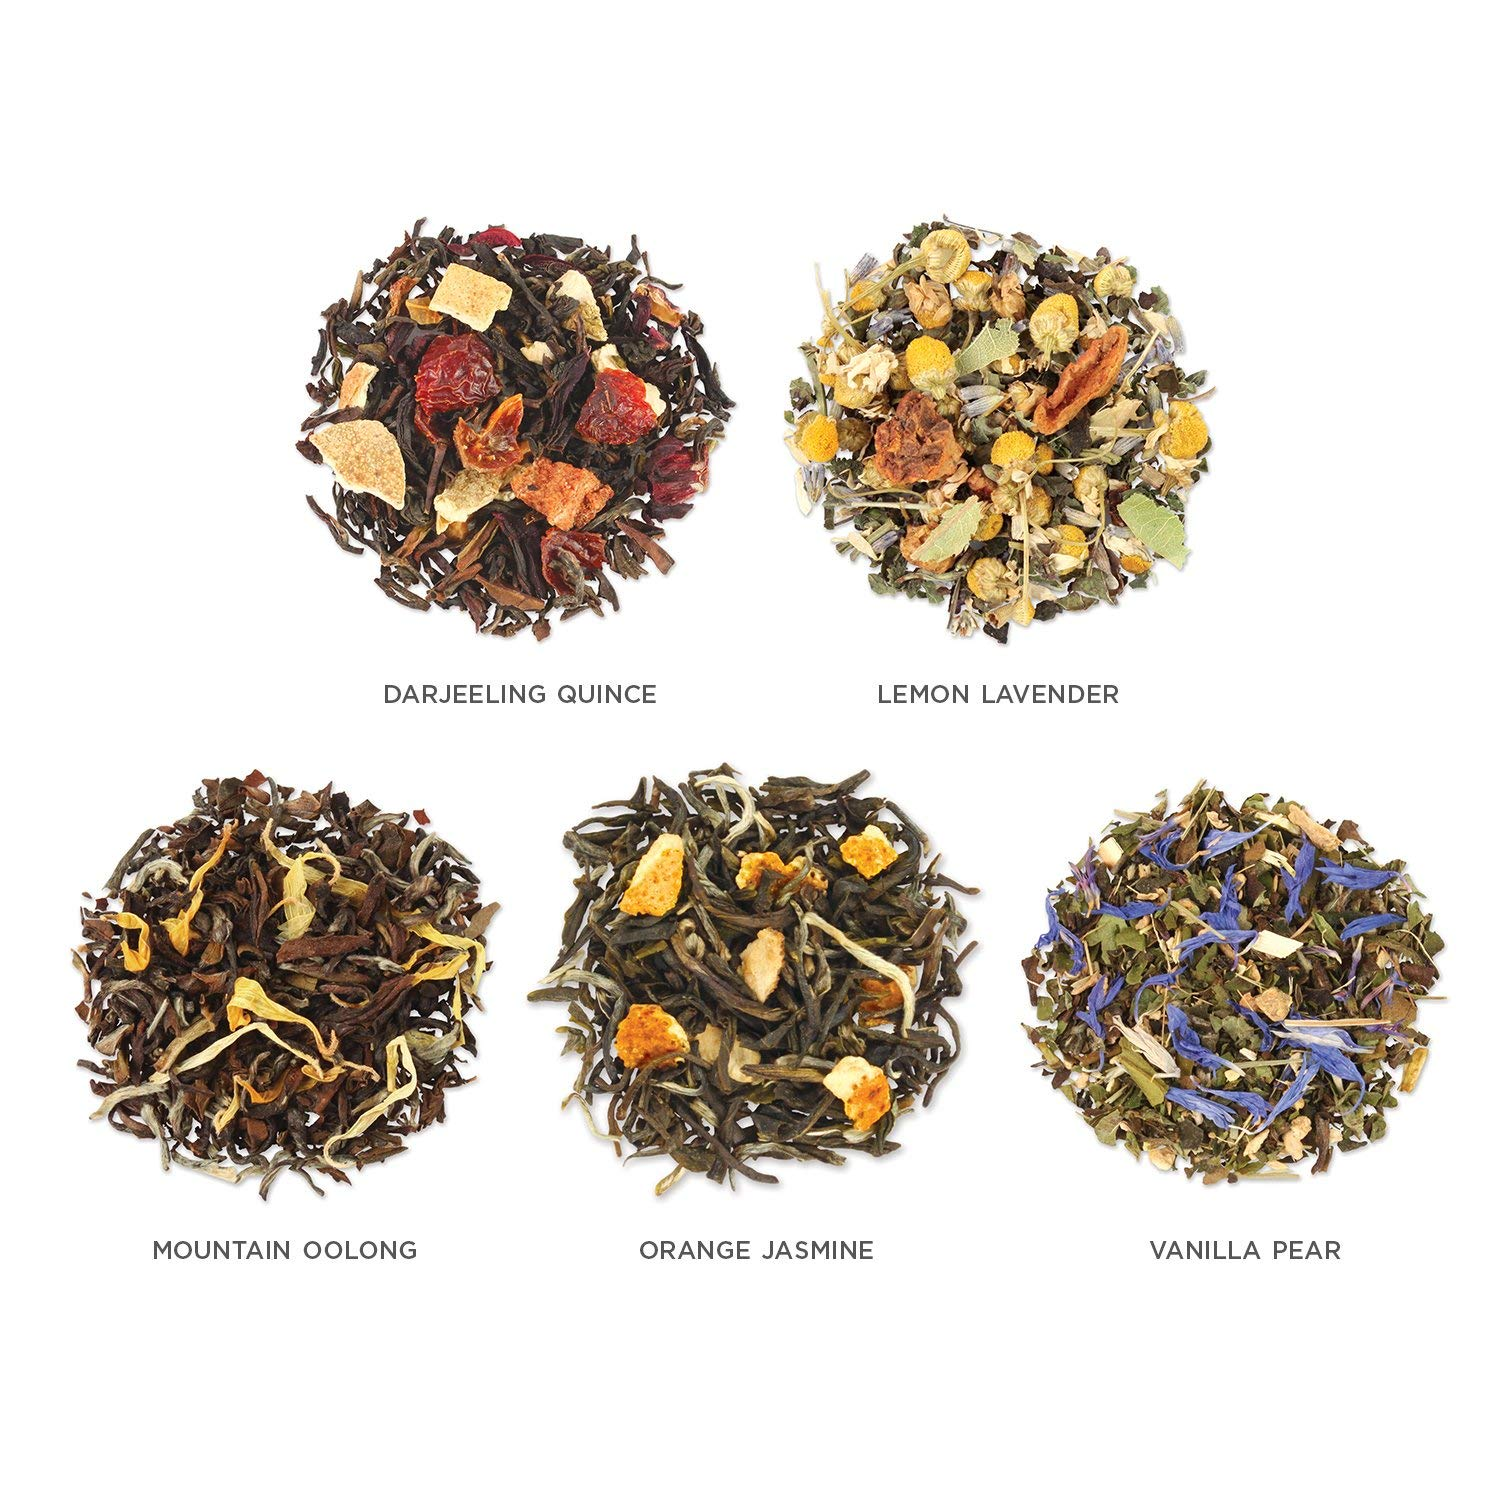 Assorted Tea Variety Pack, 15 Single Serve Pouches, Black Tea, Green Tea, Oolong Tea, White Tea, Herbal Tea